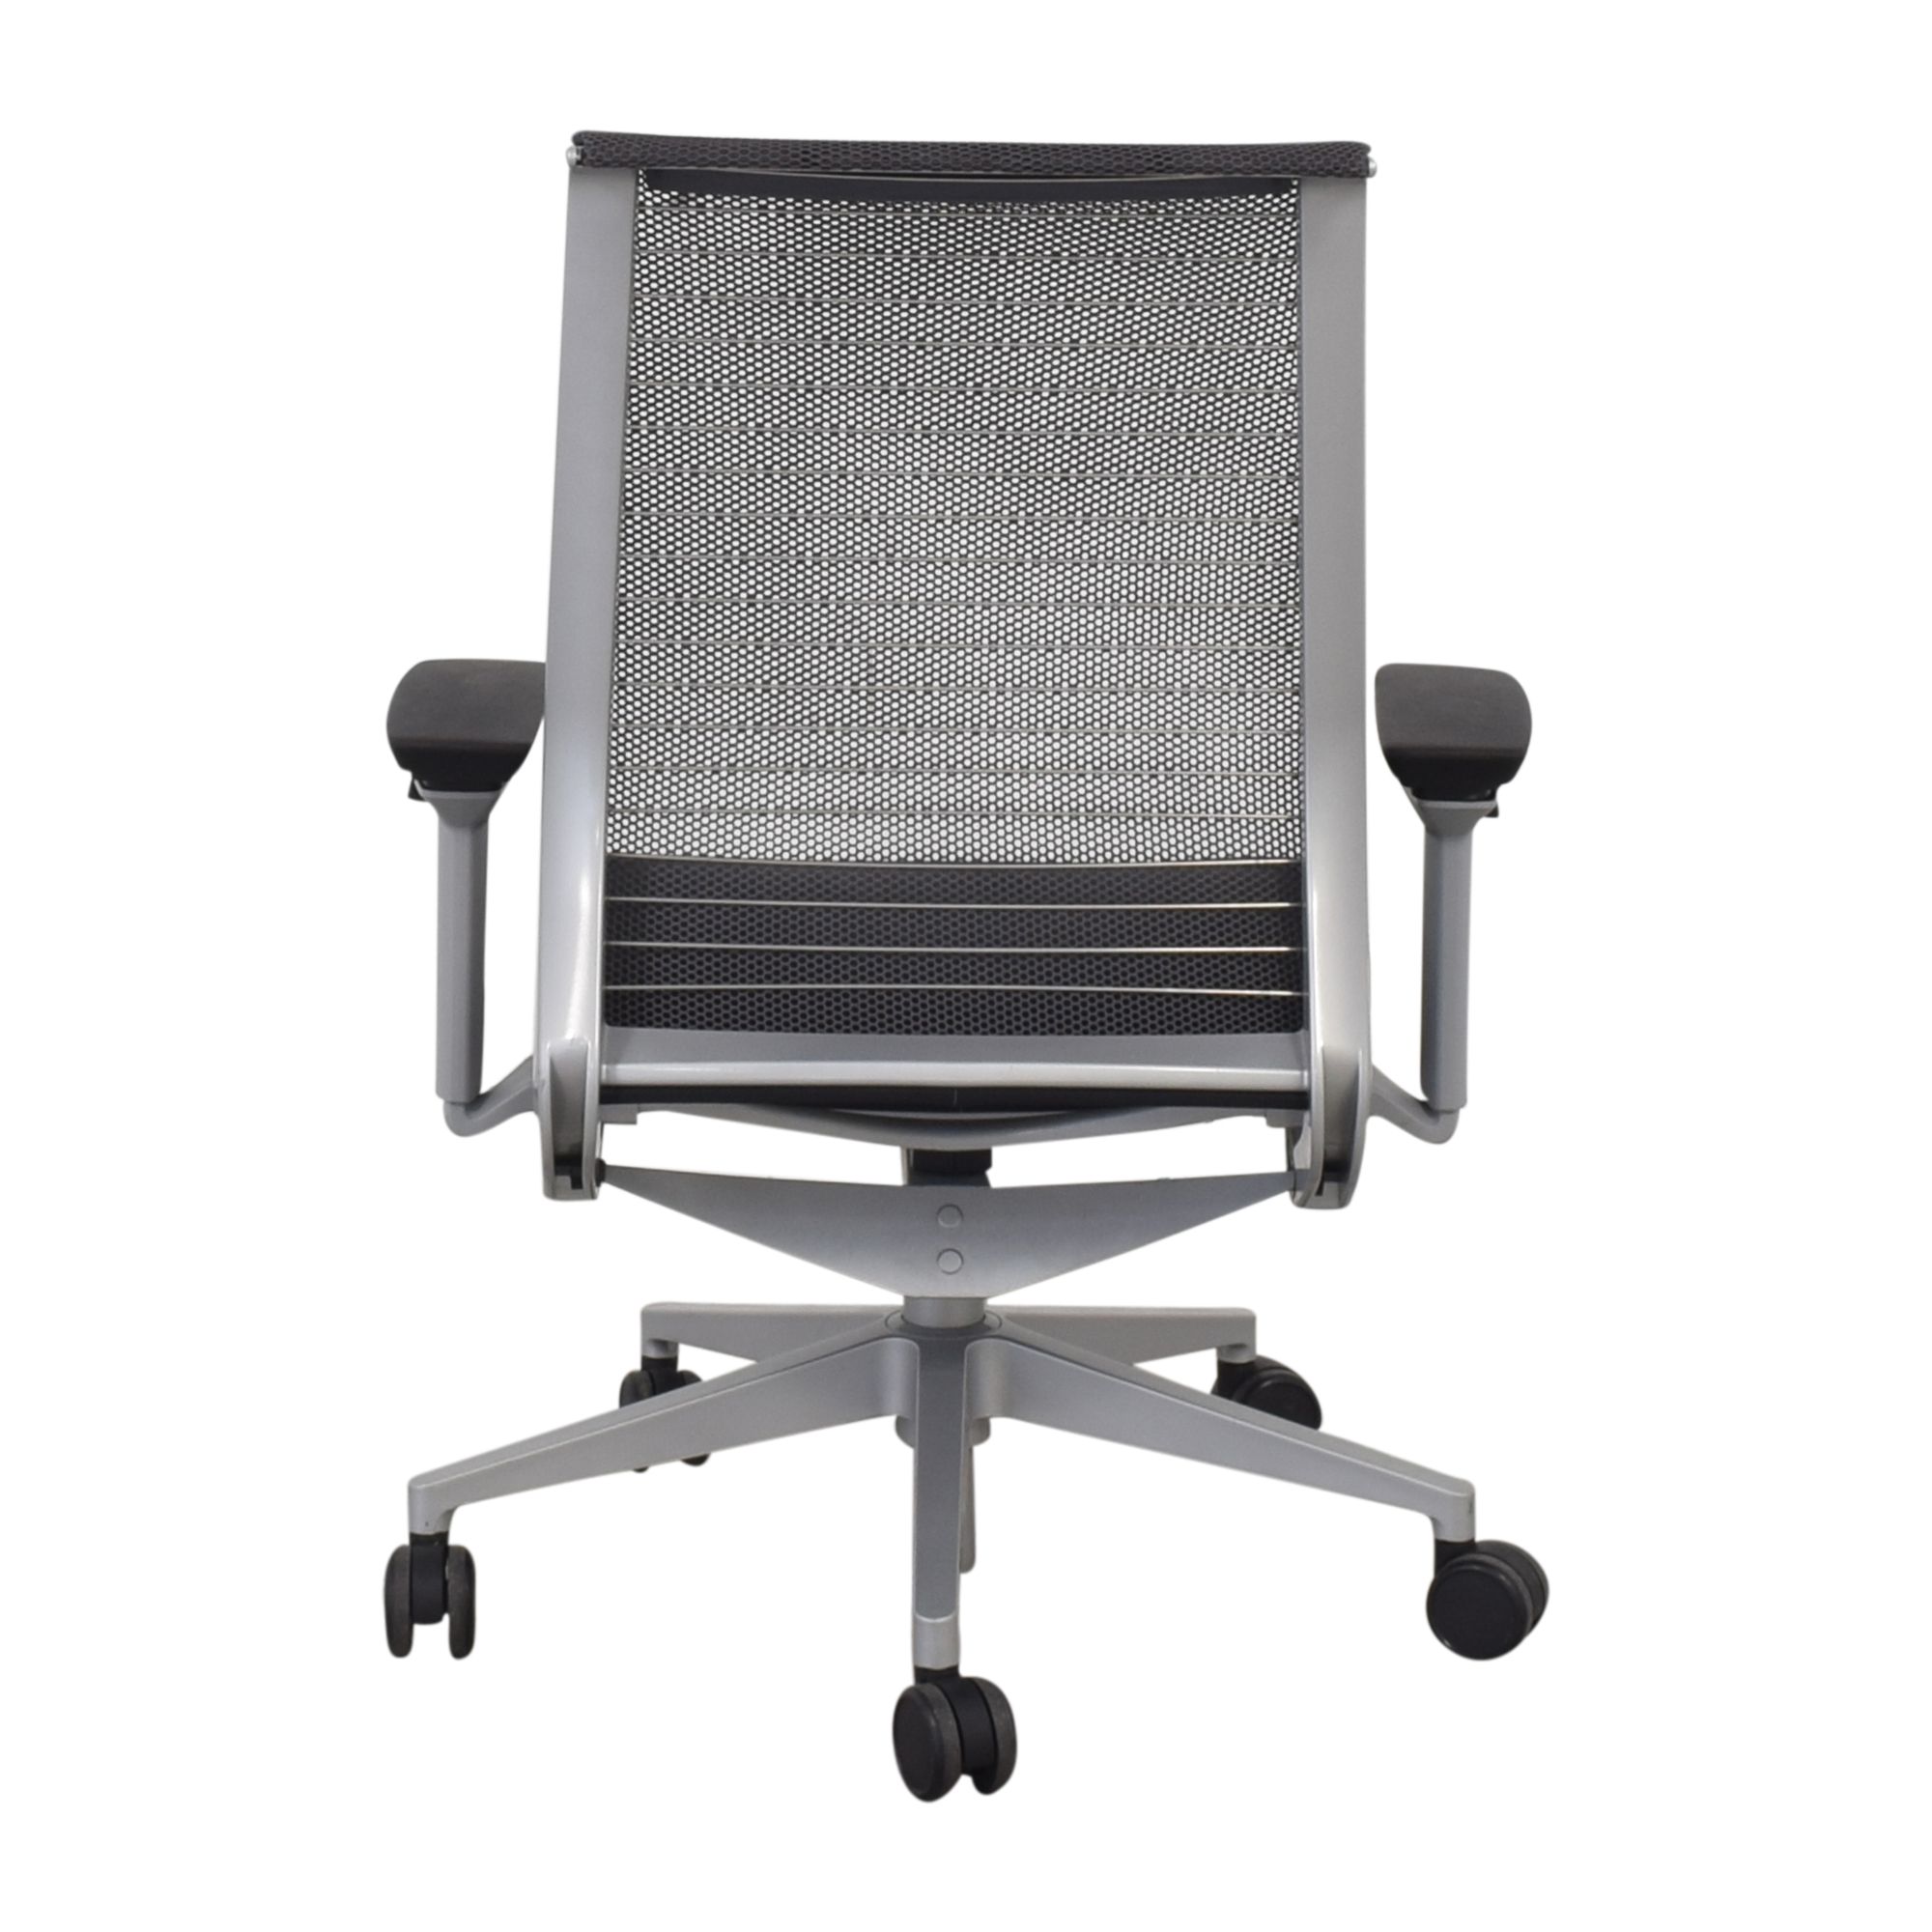 Steelcase Cobi Swivel Chair / Chairs